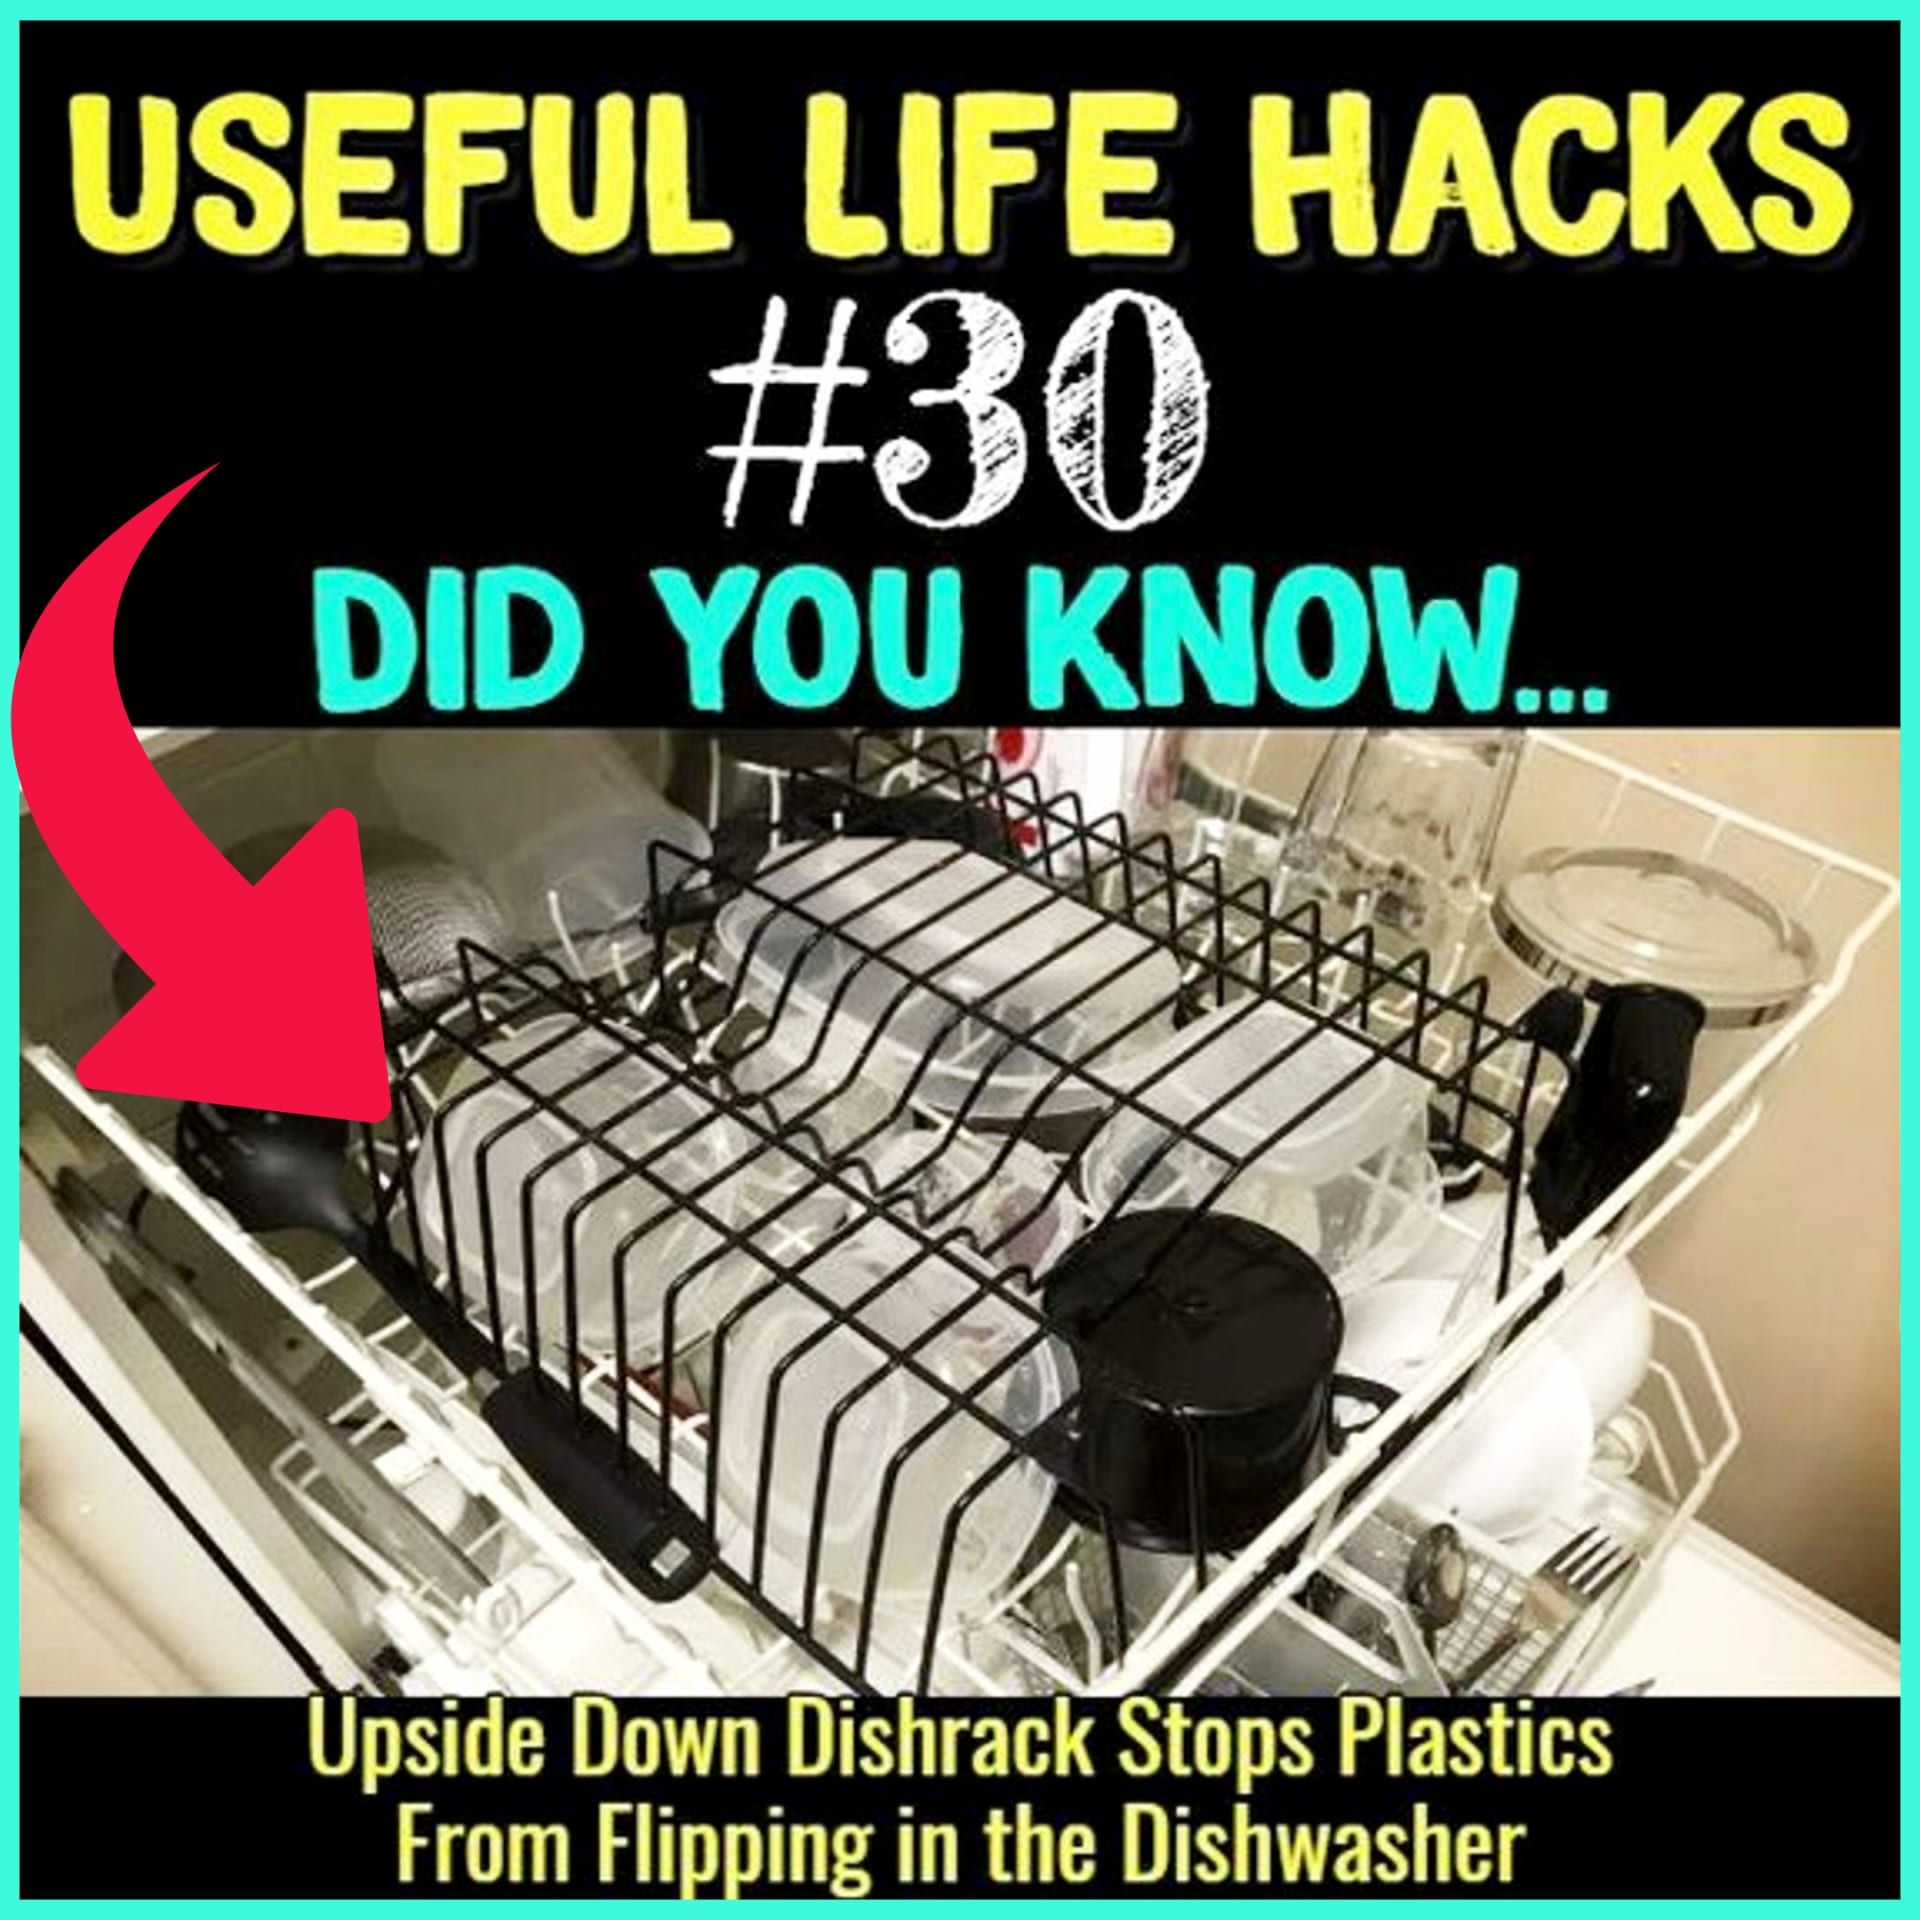 Useful Life Hacks - MIND BLOWN!  Households life hacks and good to know hacks tips and lifehacks - these household hacks, cleaning tips & tricks are such helpful hints and life changing lifehacks every girl should know.  This dishwasher hack is so clever!